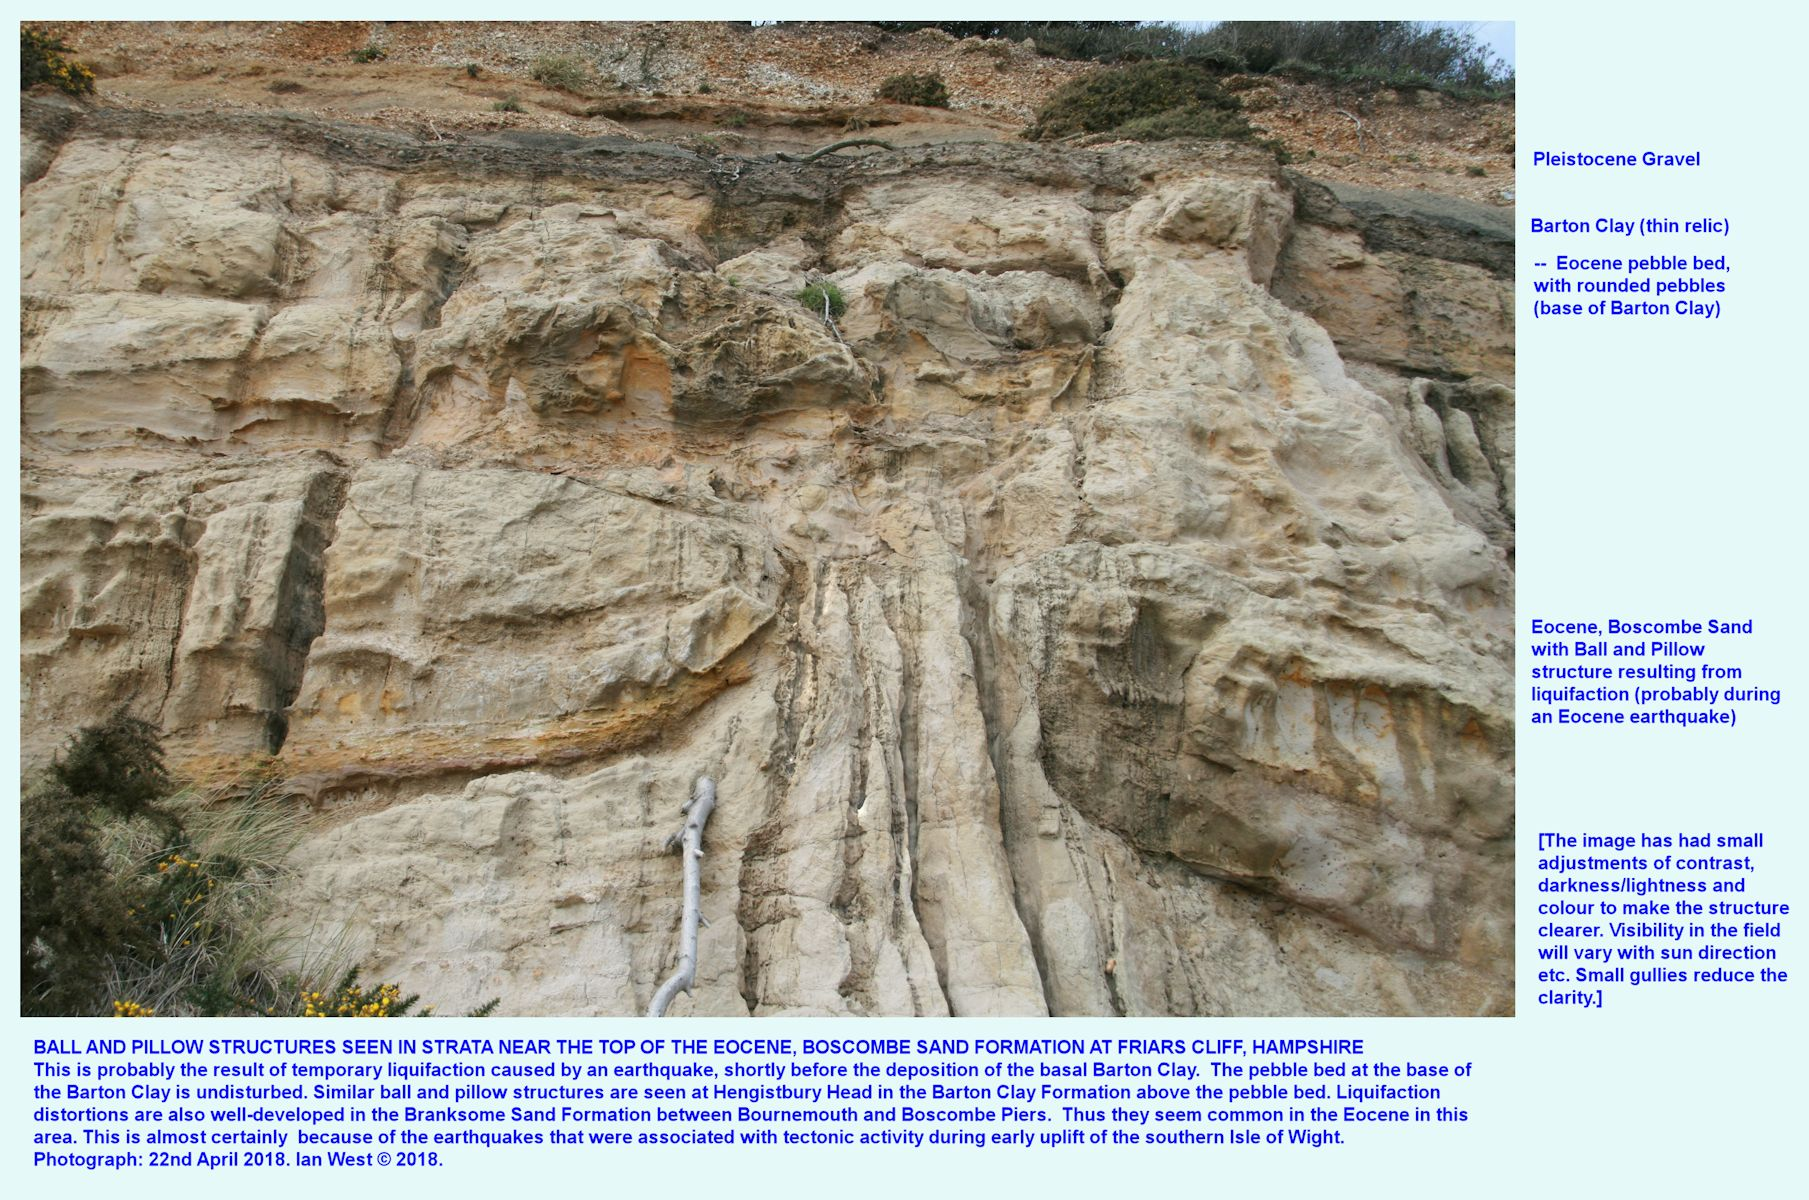 More Ball and Pillow structure in the Boscombe Sand Formation at Friars Cliff, near Highcliffe, for comparison with equivalent strata at Hengistbury Head, April, 2018